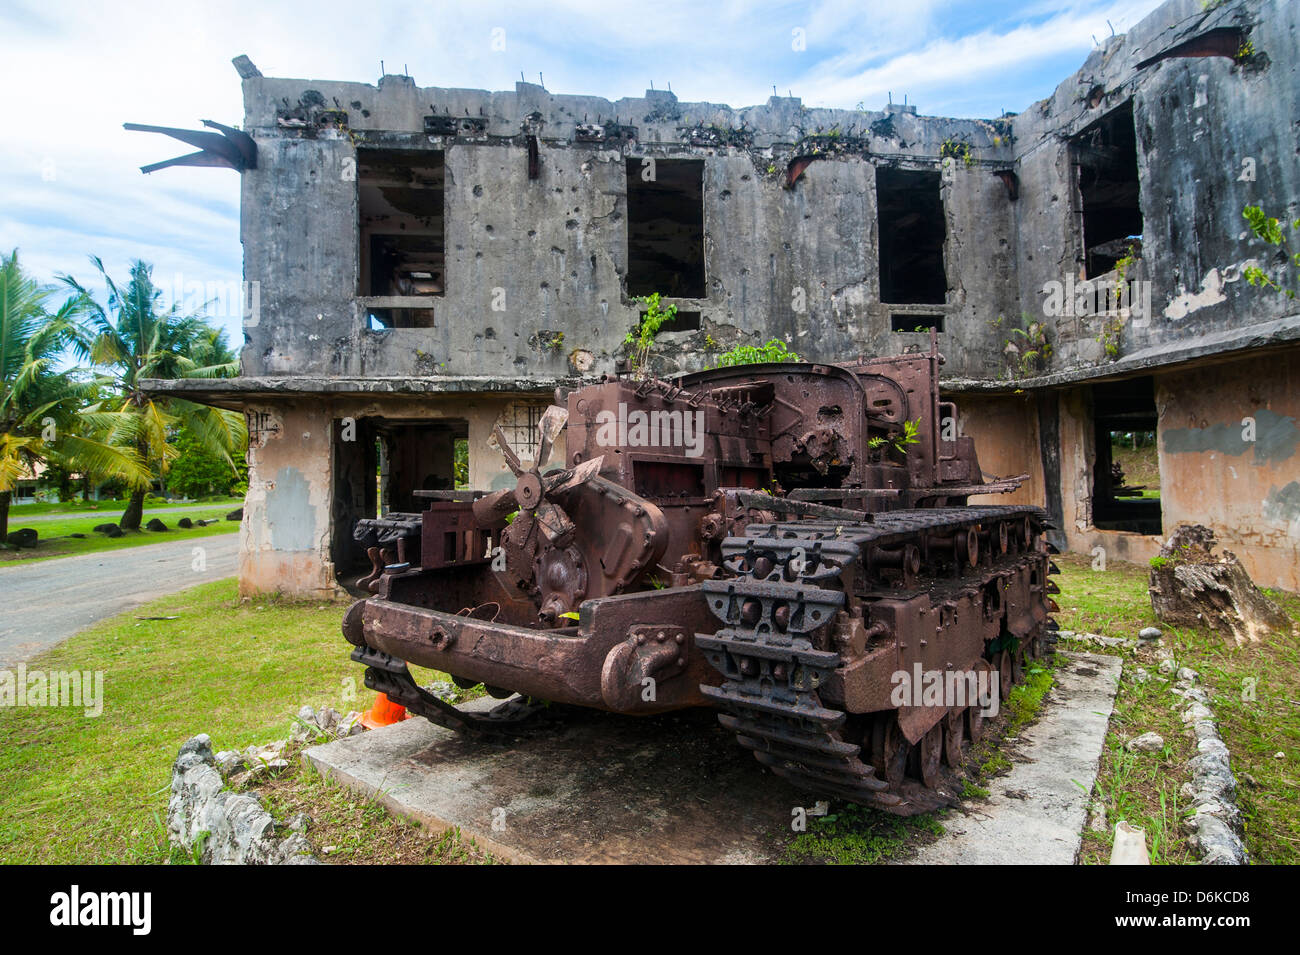 Old Japanese tank in front of the Japanese administration building, Island of Babeldoab, Palau, Central Pacific, - Stock Image